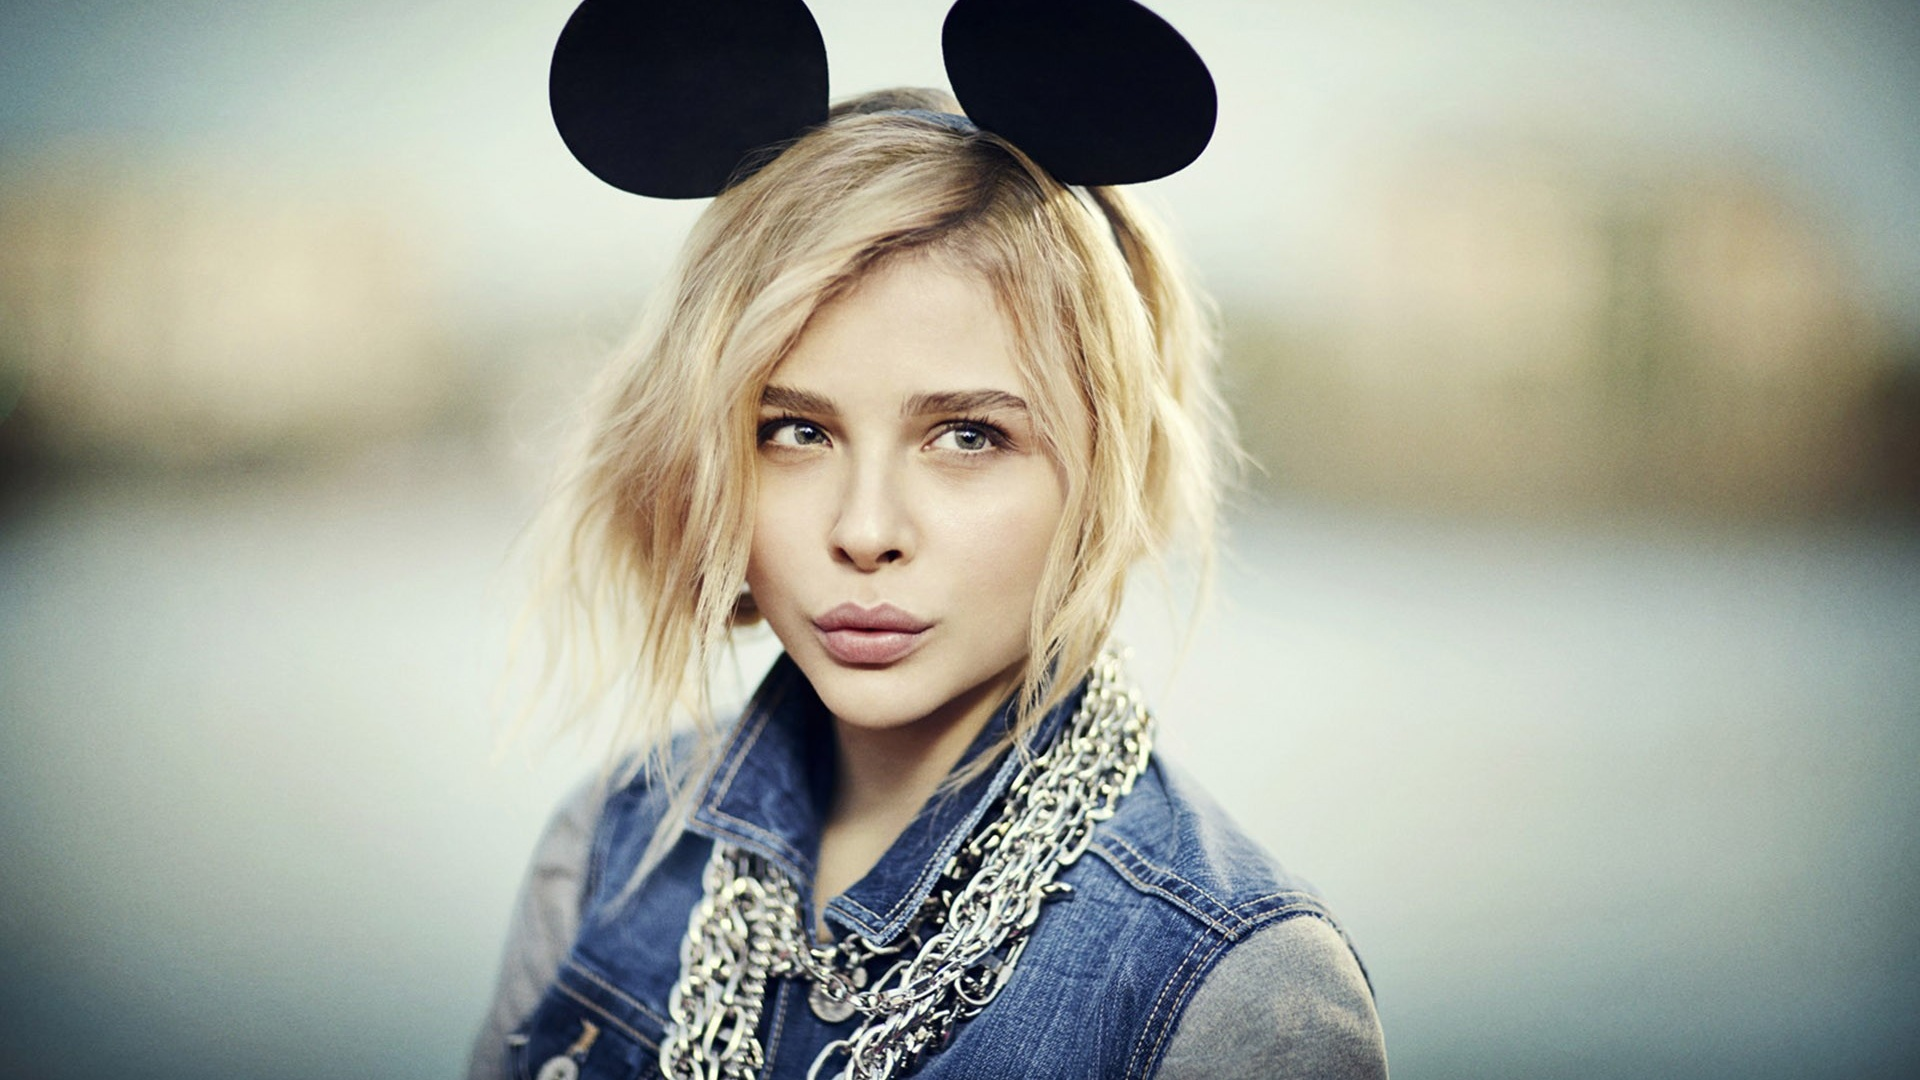 Chlo235 Grace Moretz Wallpapers High Resolution and Quality